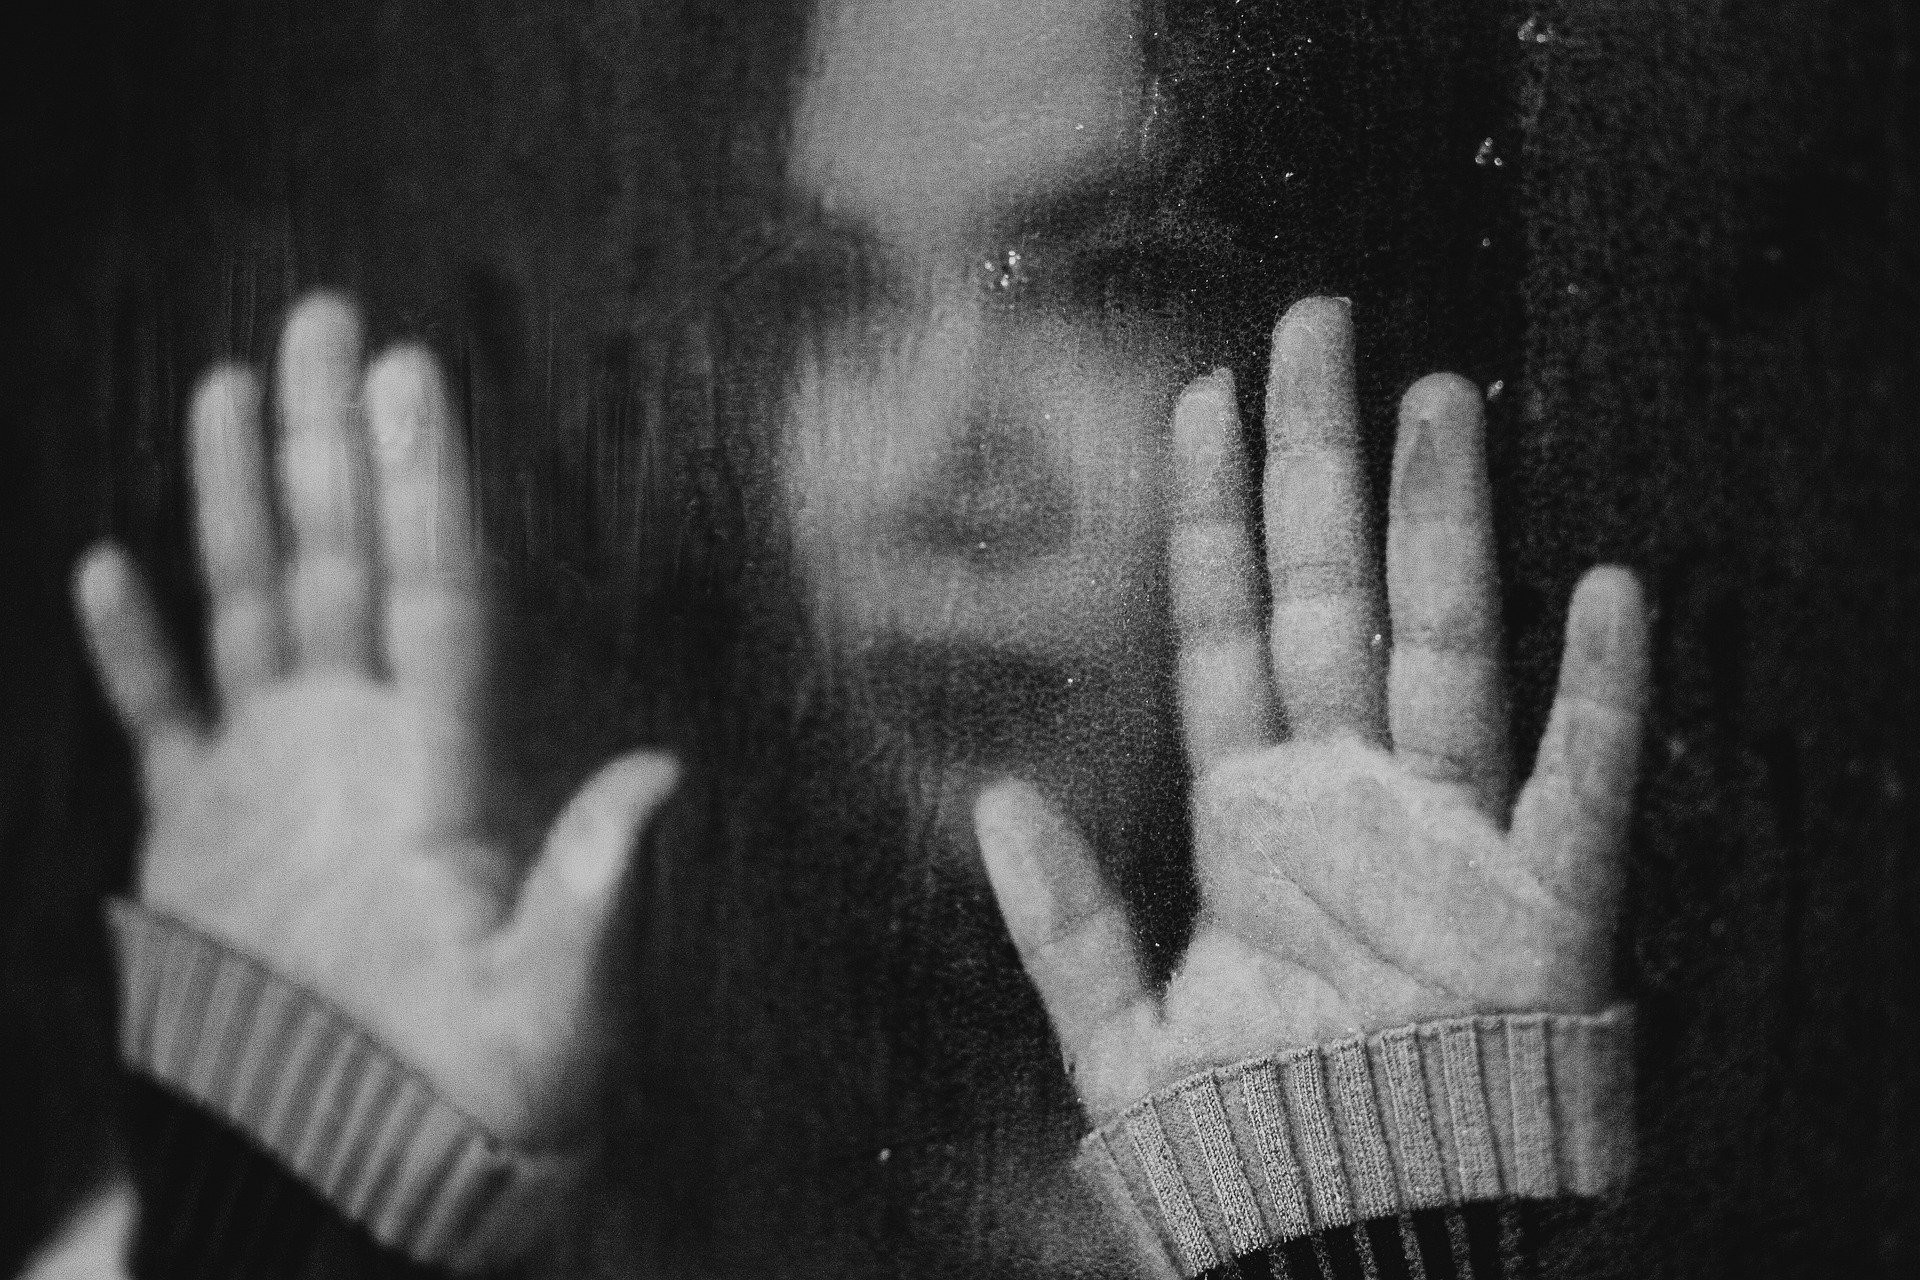 Black and white photo or a woman looking out a window with her hands pressed against the glass. It is raining outside.